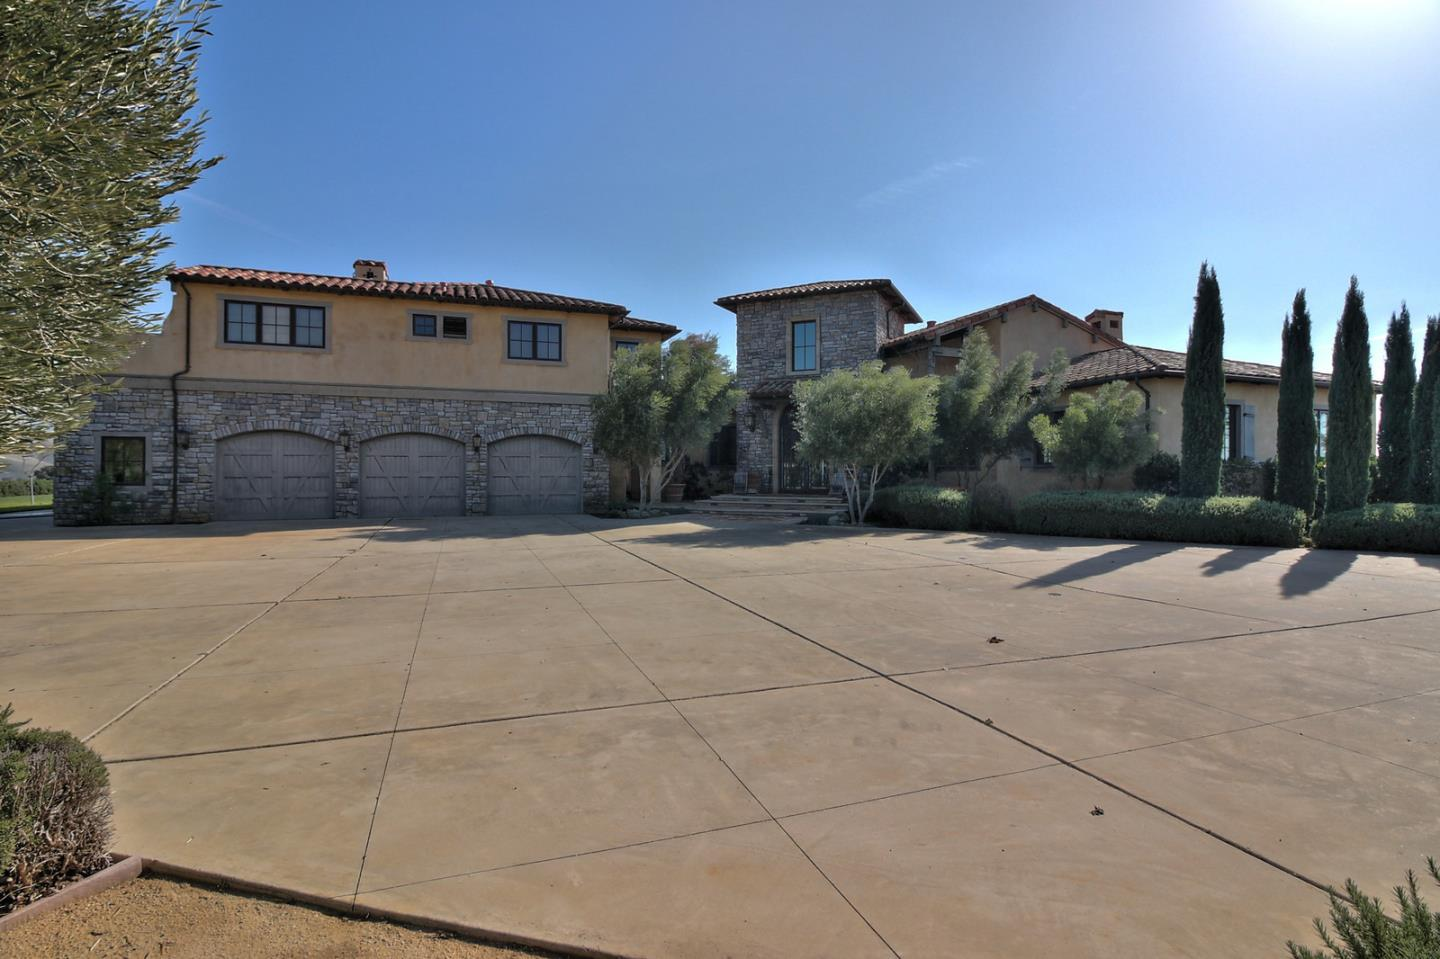 Single Family Home for Sale at 7400 Pacheco Pass Highway 7400 Pacheco Pass Highway Hollister, California 95023 United States